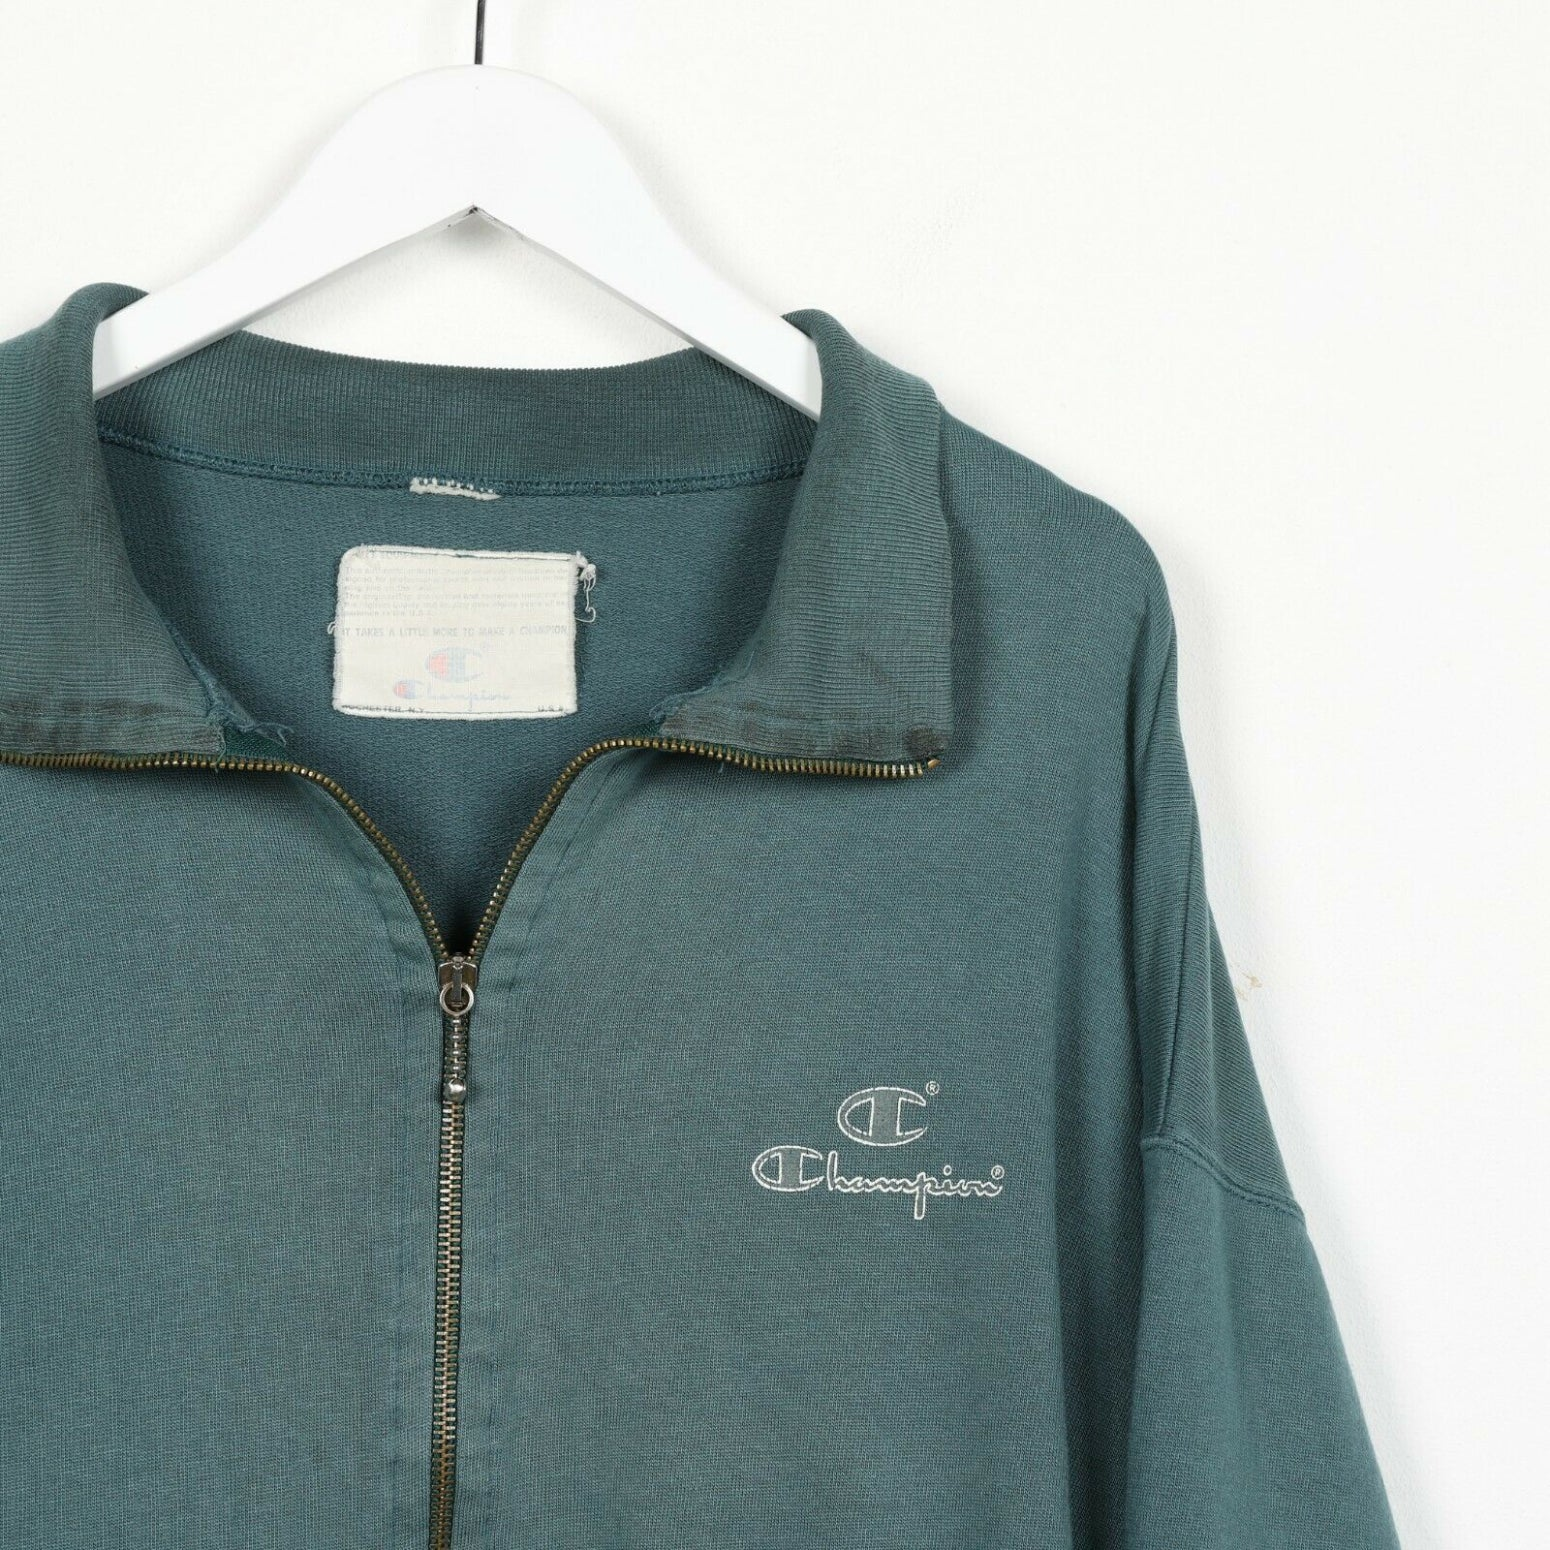 Vintage 90s CHAMPION Small Logo Zip Up Hoodie Sweatshirt Green 2XL